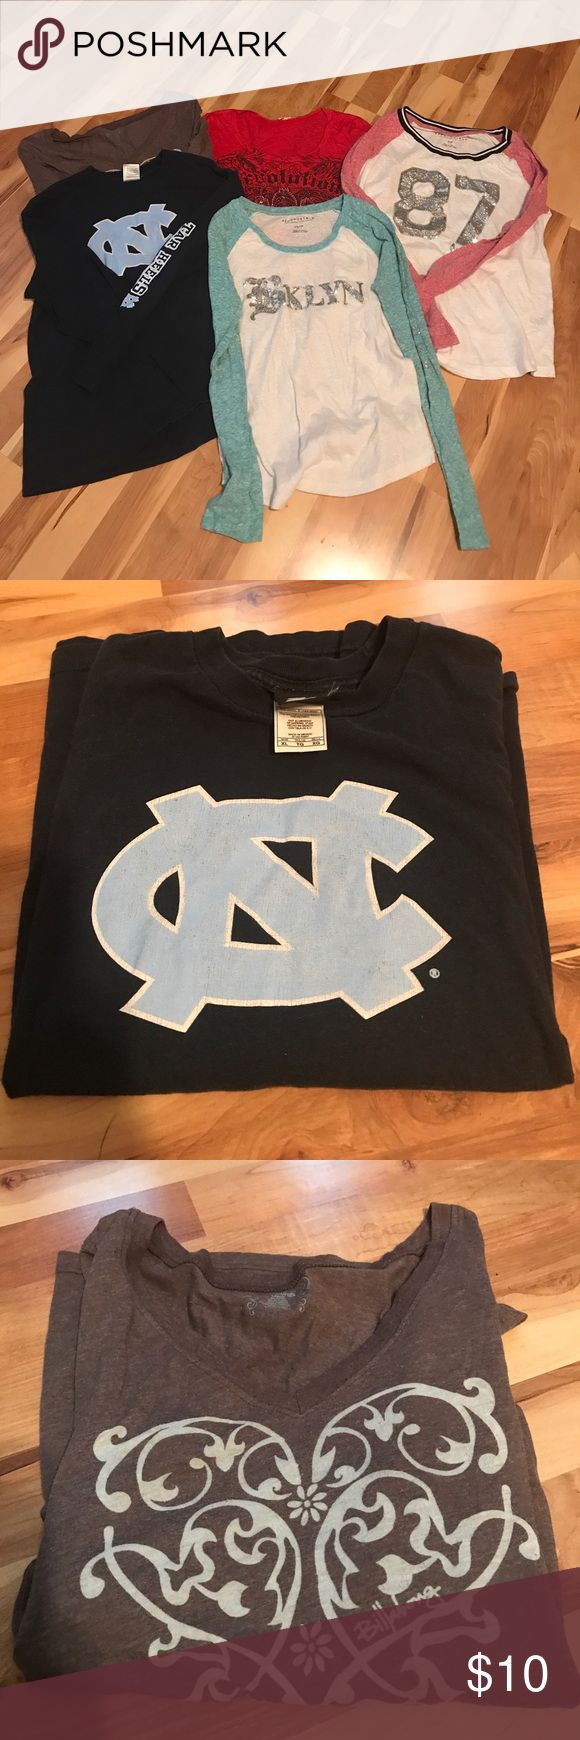 Lot of junior girls long sleeve shirts 2 Aeropostale size small long sleeve tops with glitter design 1 Revolution red long sleeve top with appliqué design 1 Billabong long sleeve top size L but runs small 1 long sleeve NC Tar Heels top size XL girls fits small junior Tops Tees - Long Sleeve